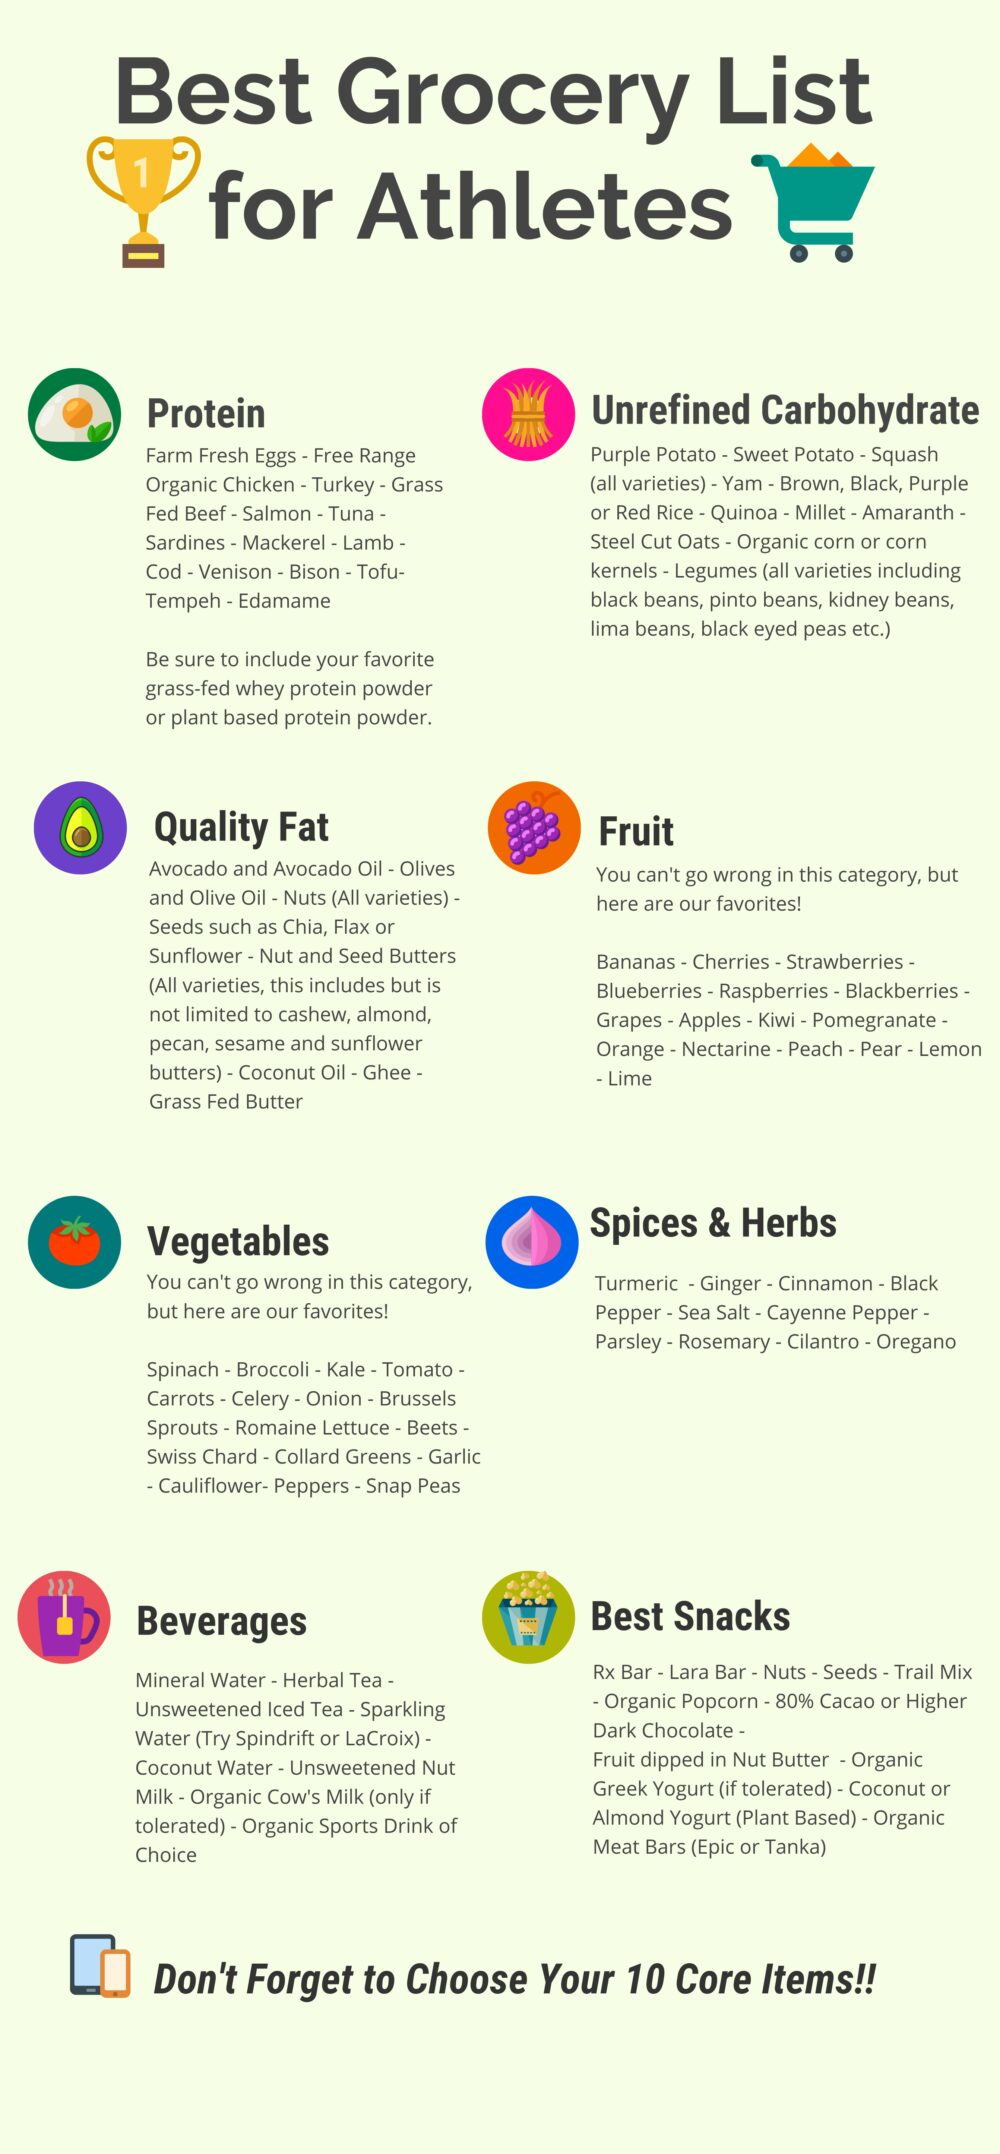 The Best Grocery List for Athletes